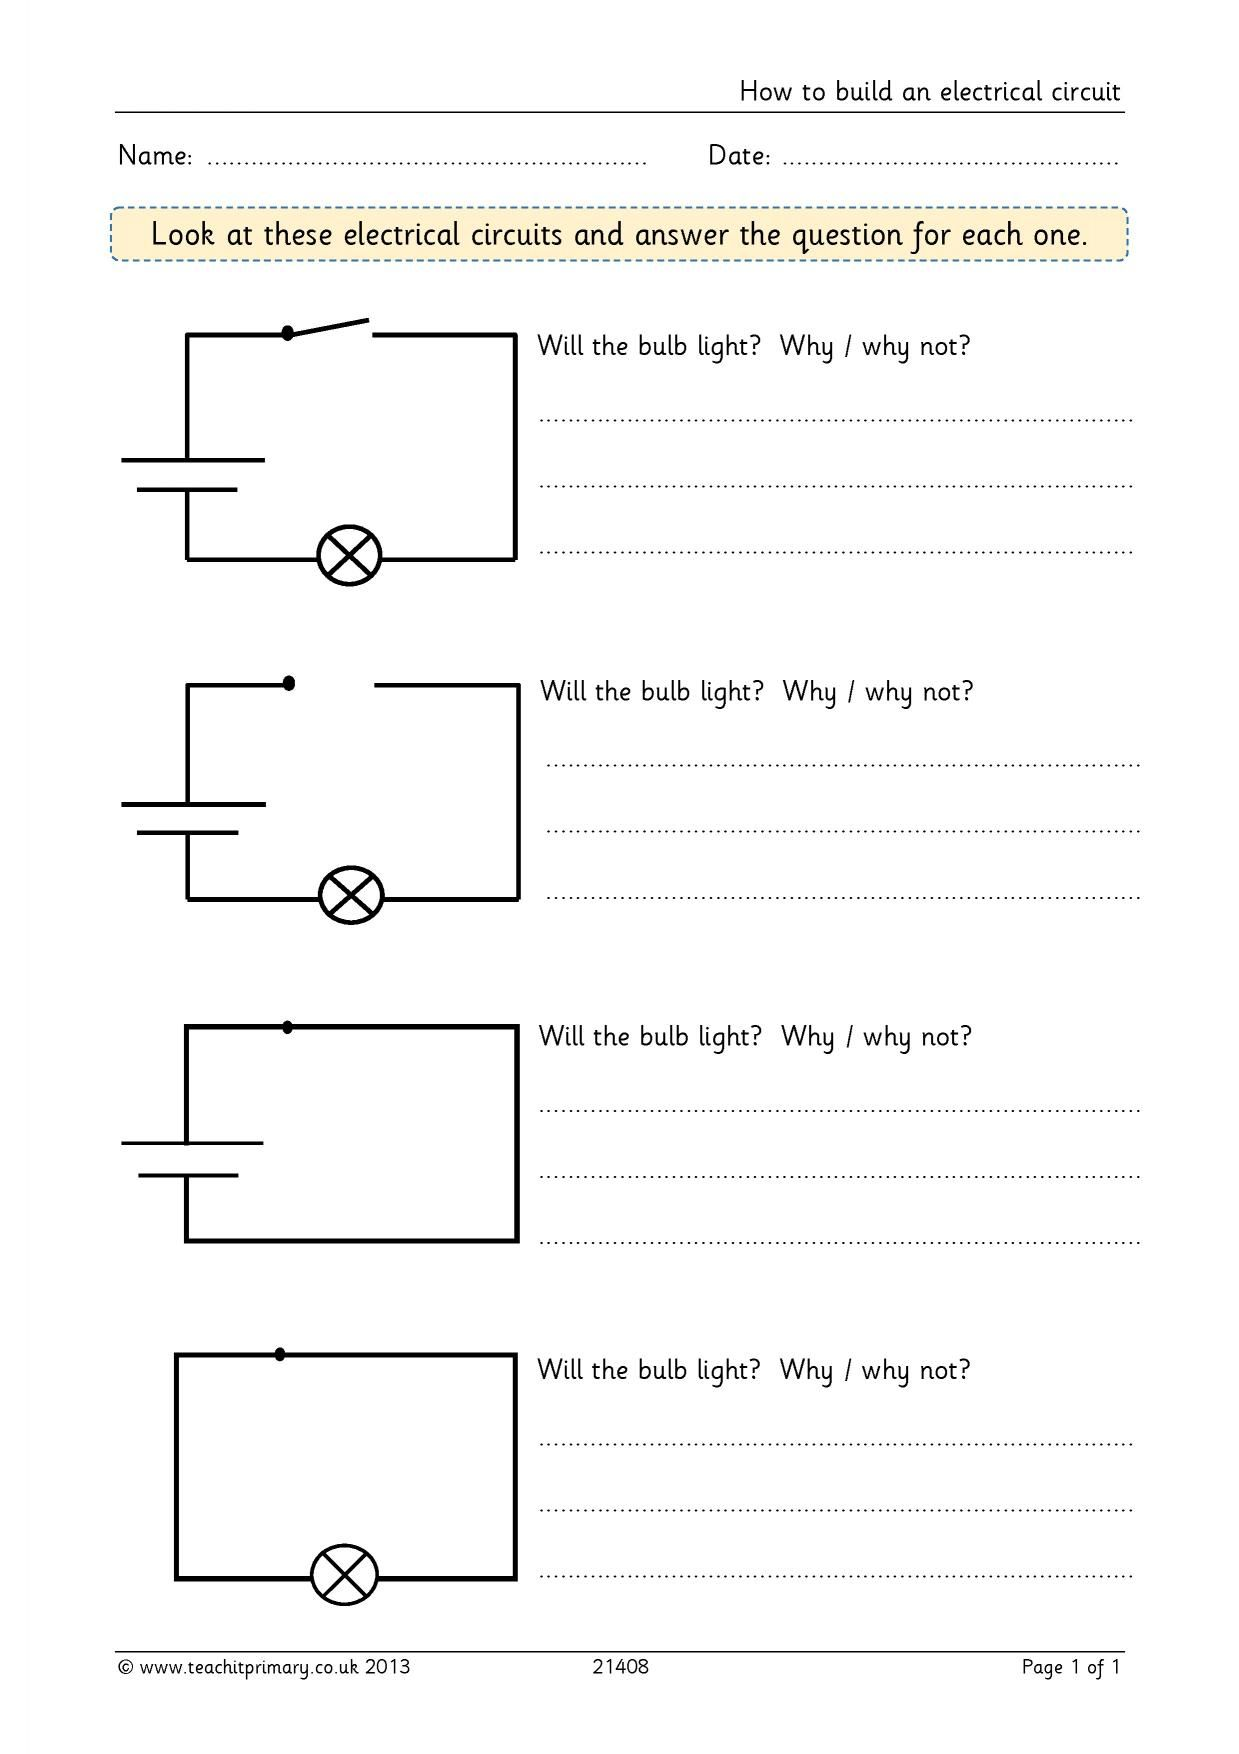 How To Build An Electrical Circuit With Images